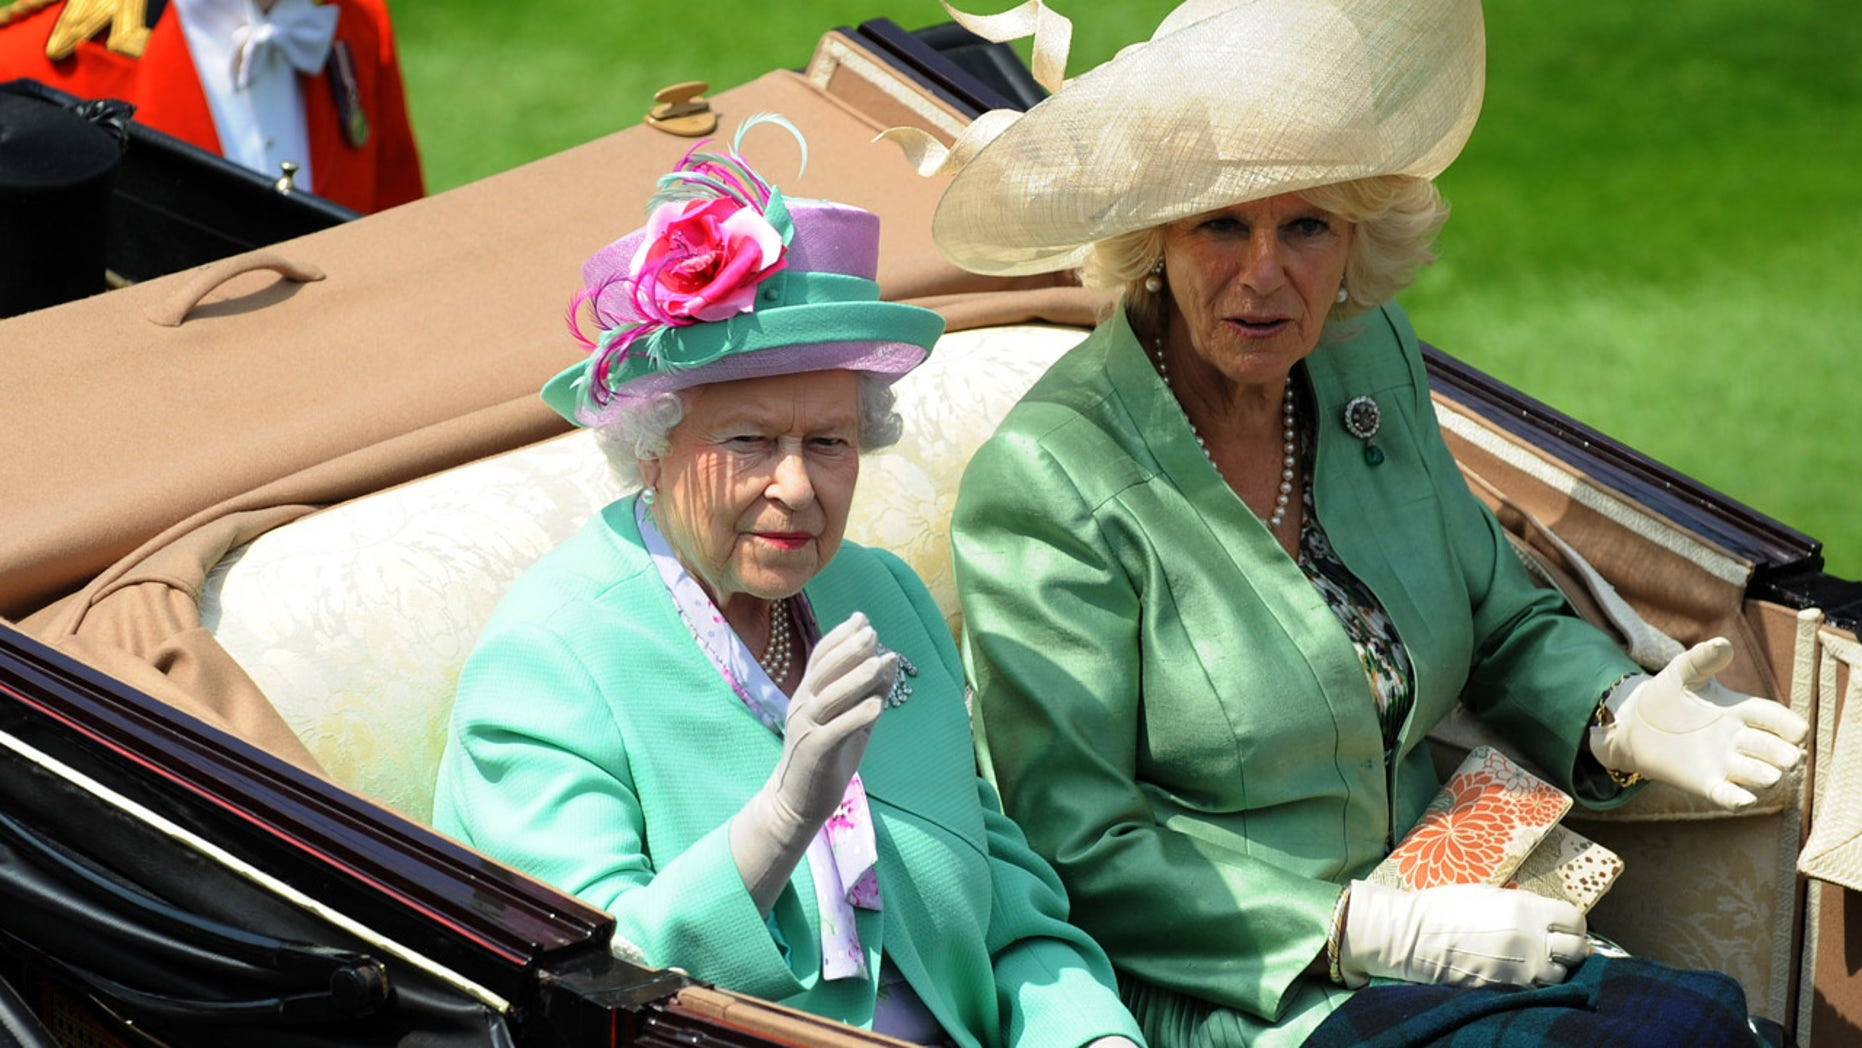 Right to left: Camilla, Duchess of Cornwall, with her mother-in-law, Queen Elizabeth II.